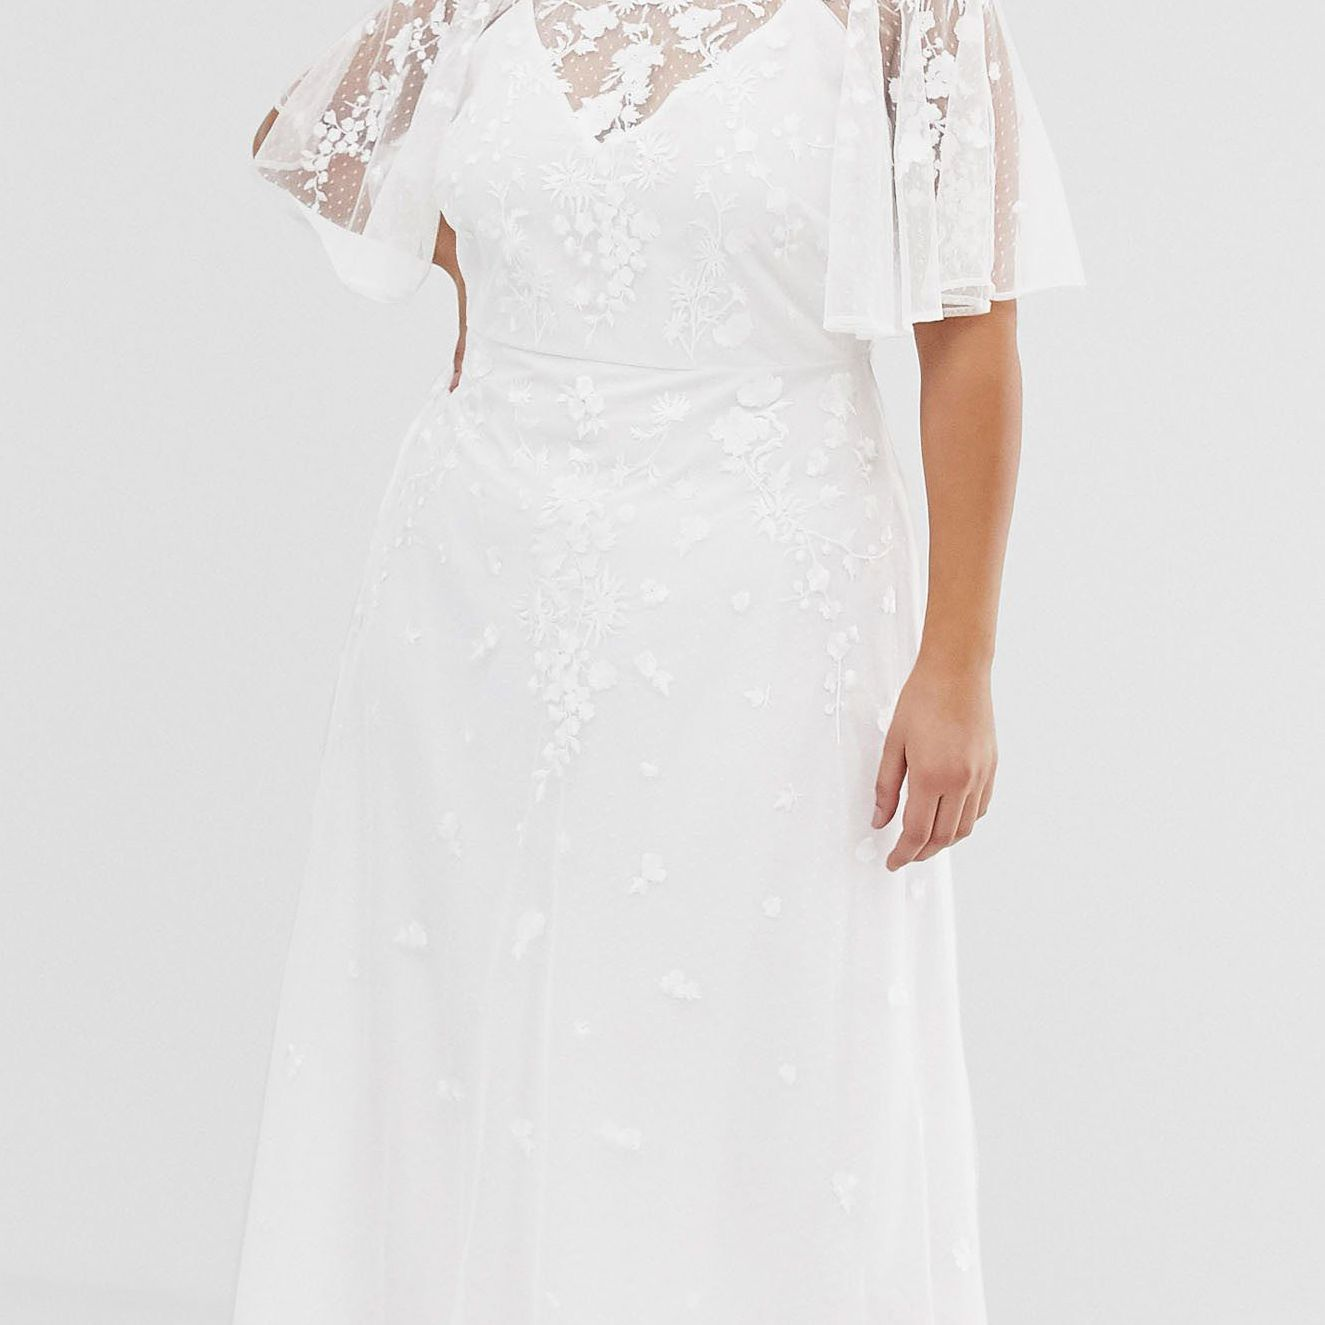 The 27 Best Plus Size Wedding Dresses Of 2020,Nice Summer Dresses For Weddings